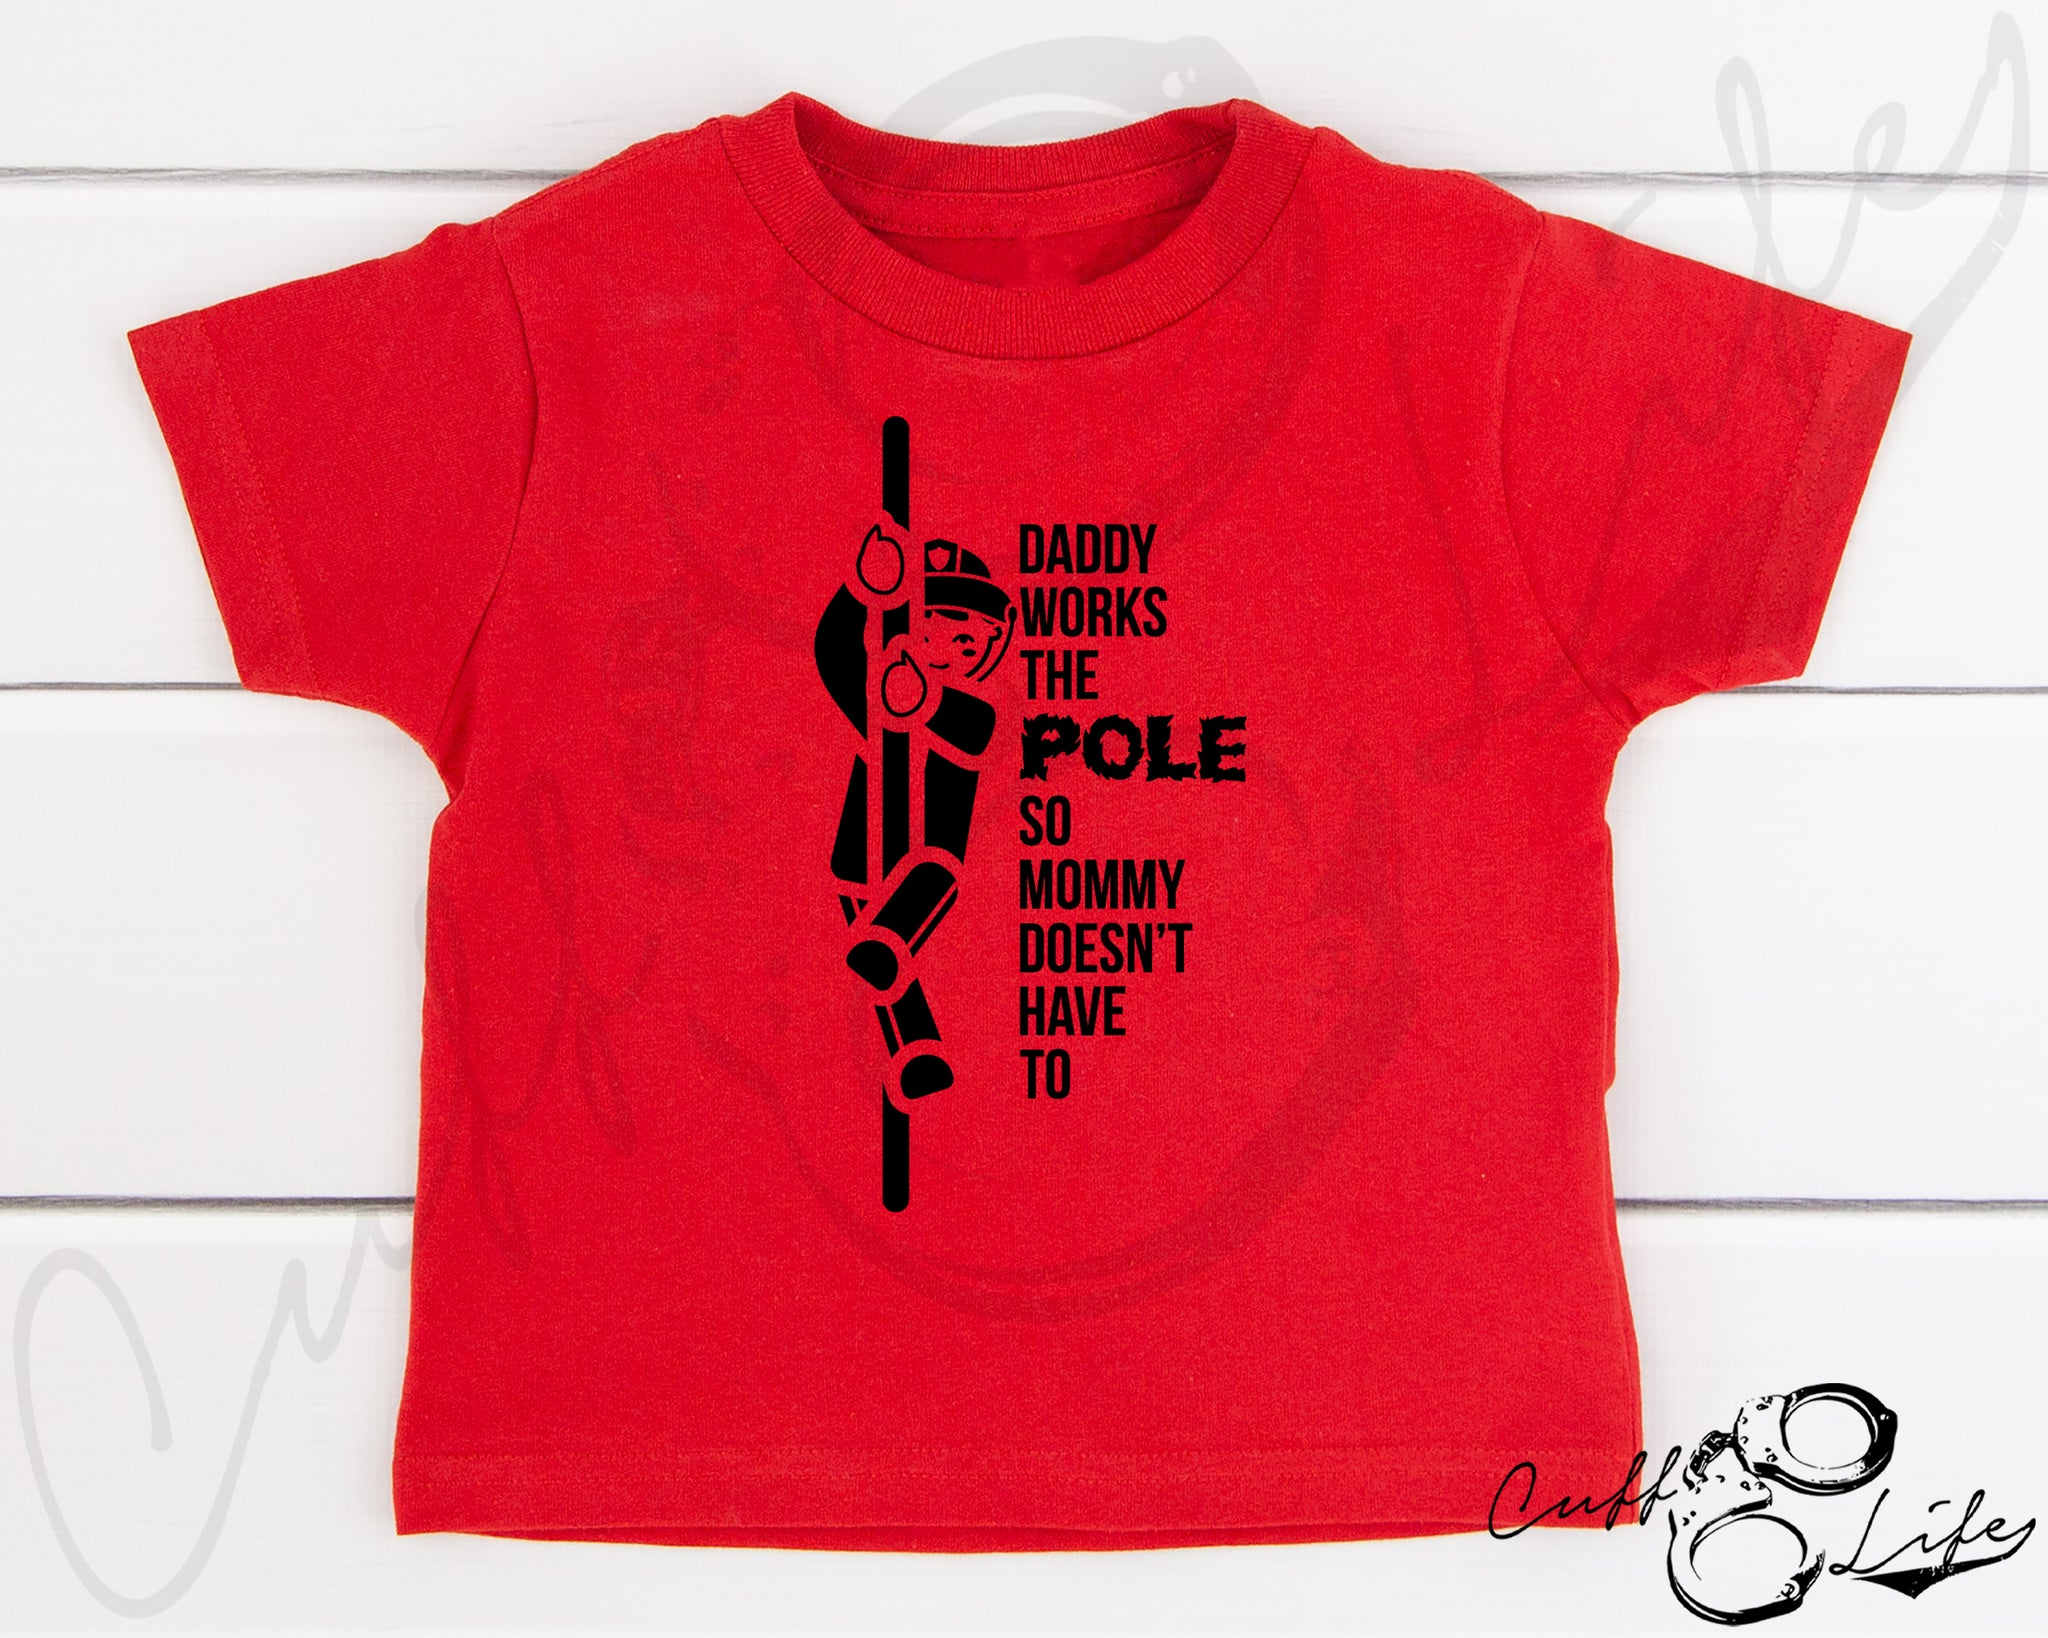 Daddy Works the Pole © - Toddler/Youth T-Shirt